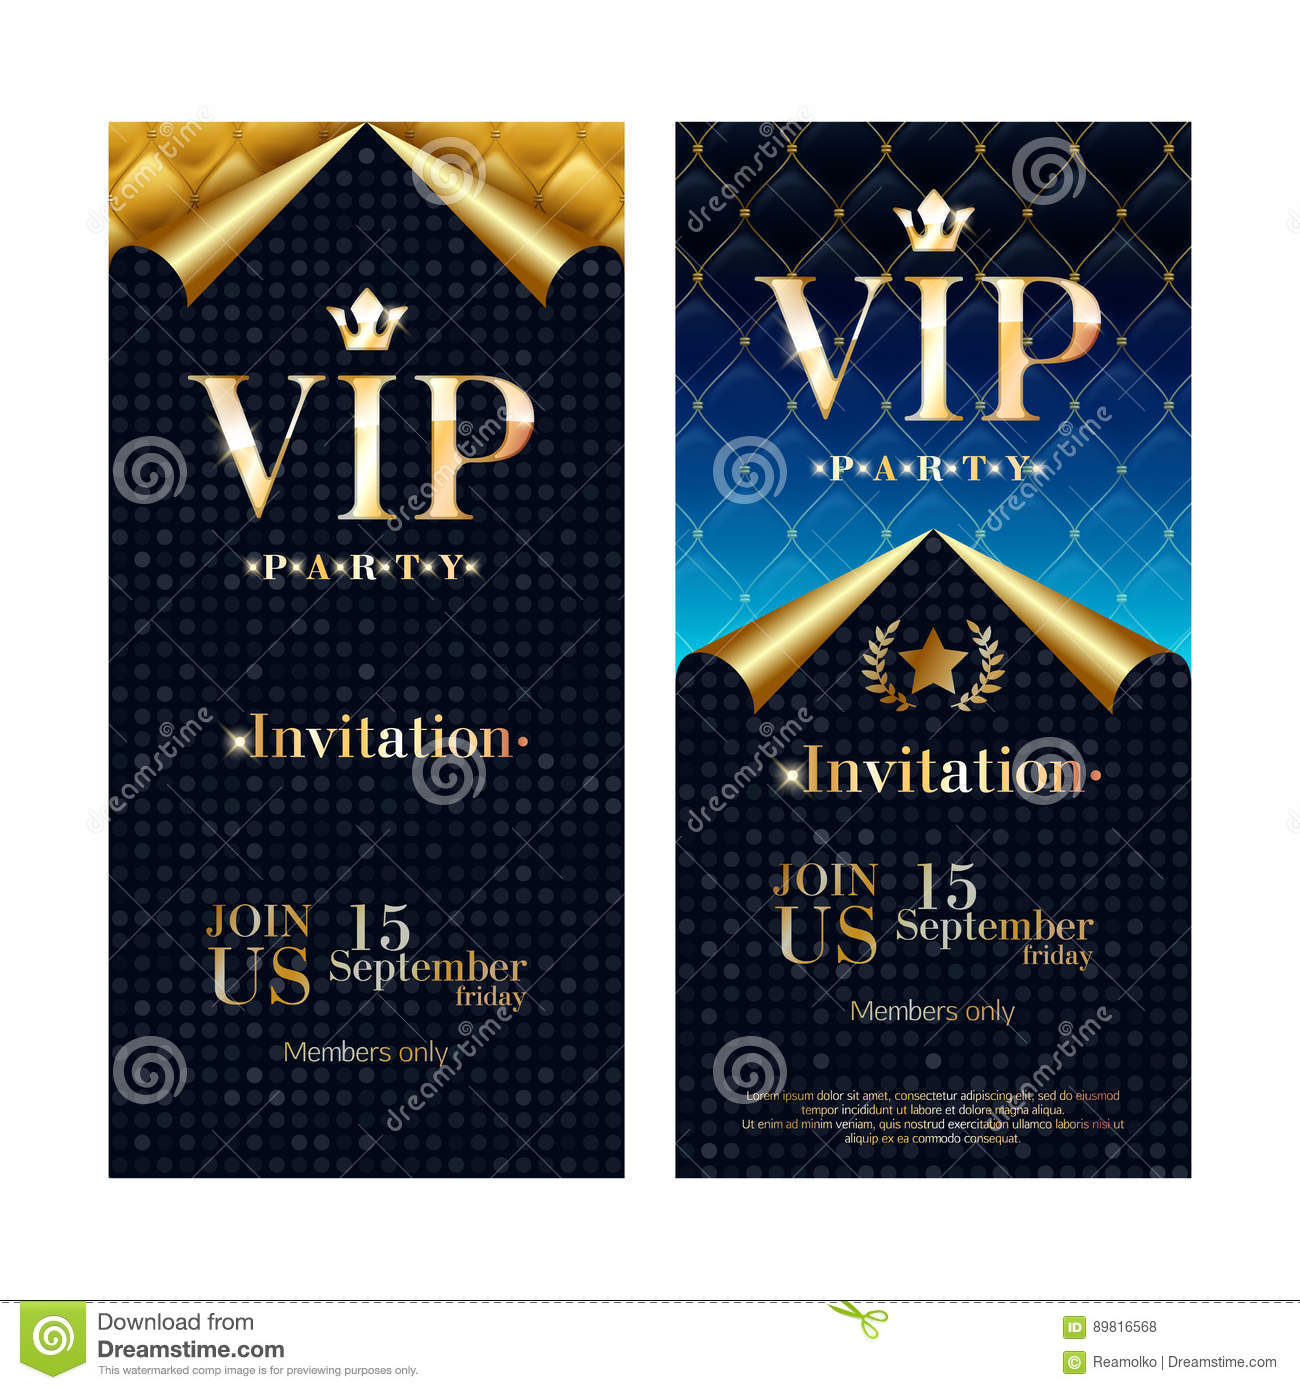 VIP Invitation Card Premium Design Templates Set. Stock Vector ...